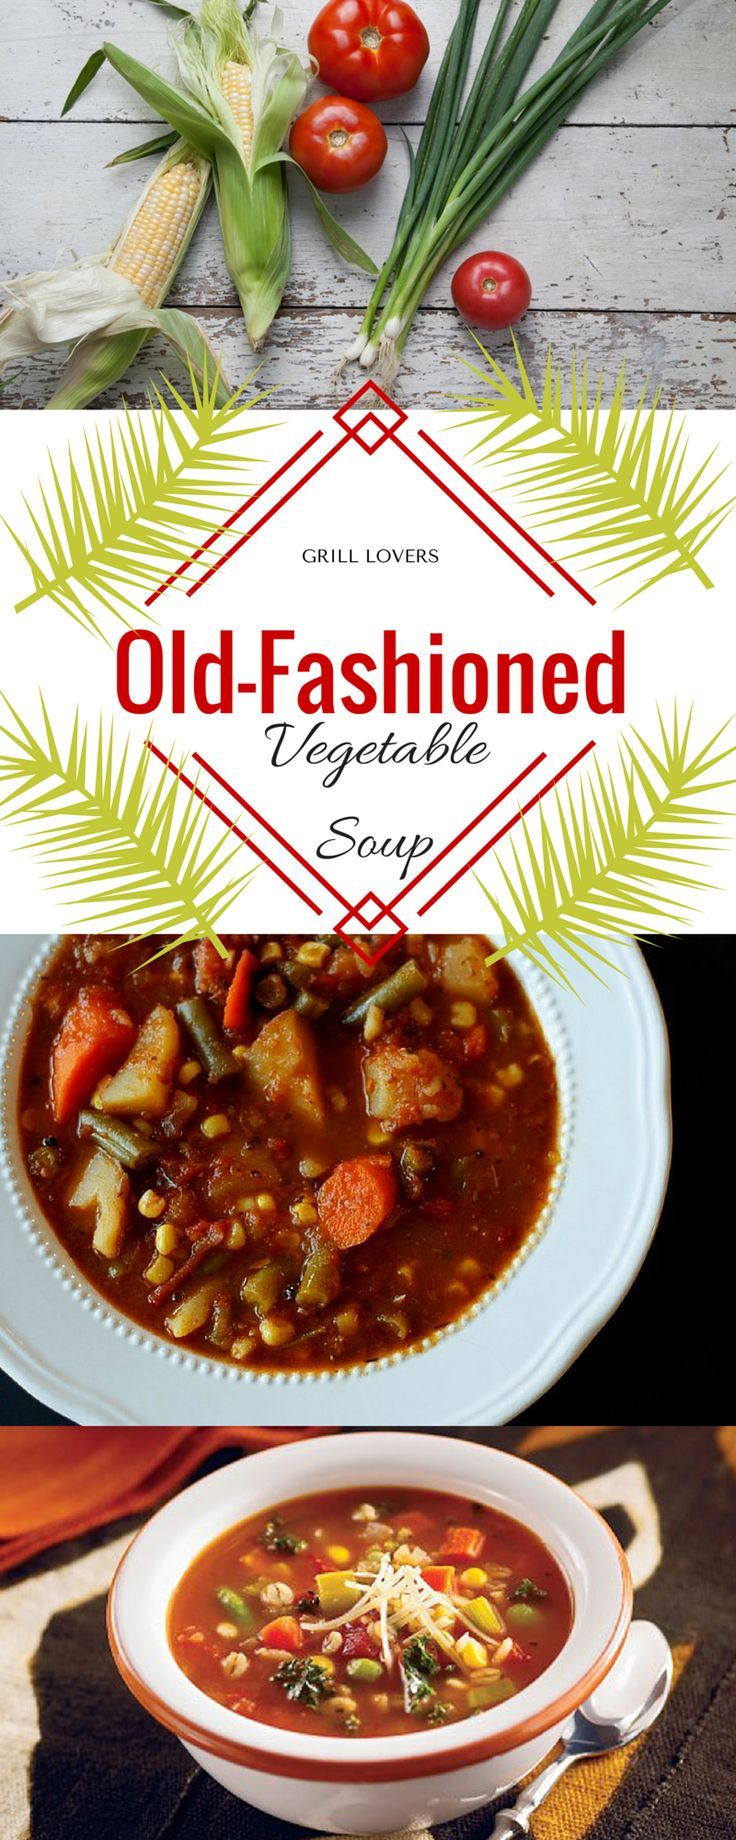 Grill Lovers' Old-Fashioned Vegetable Soup Recipe